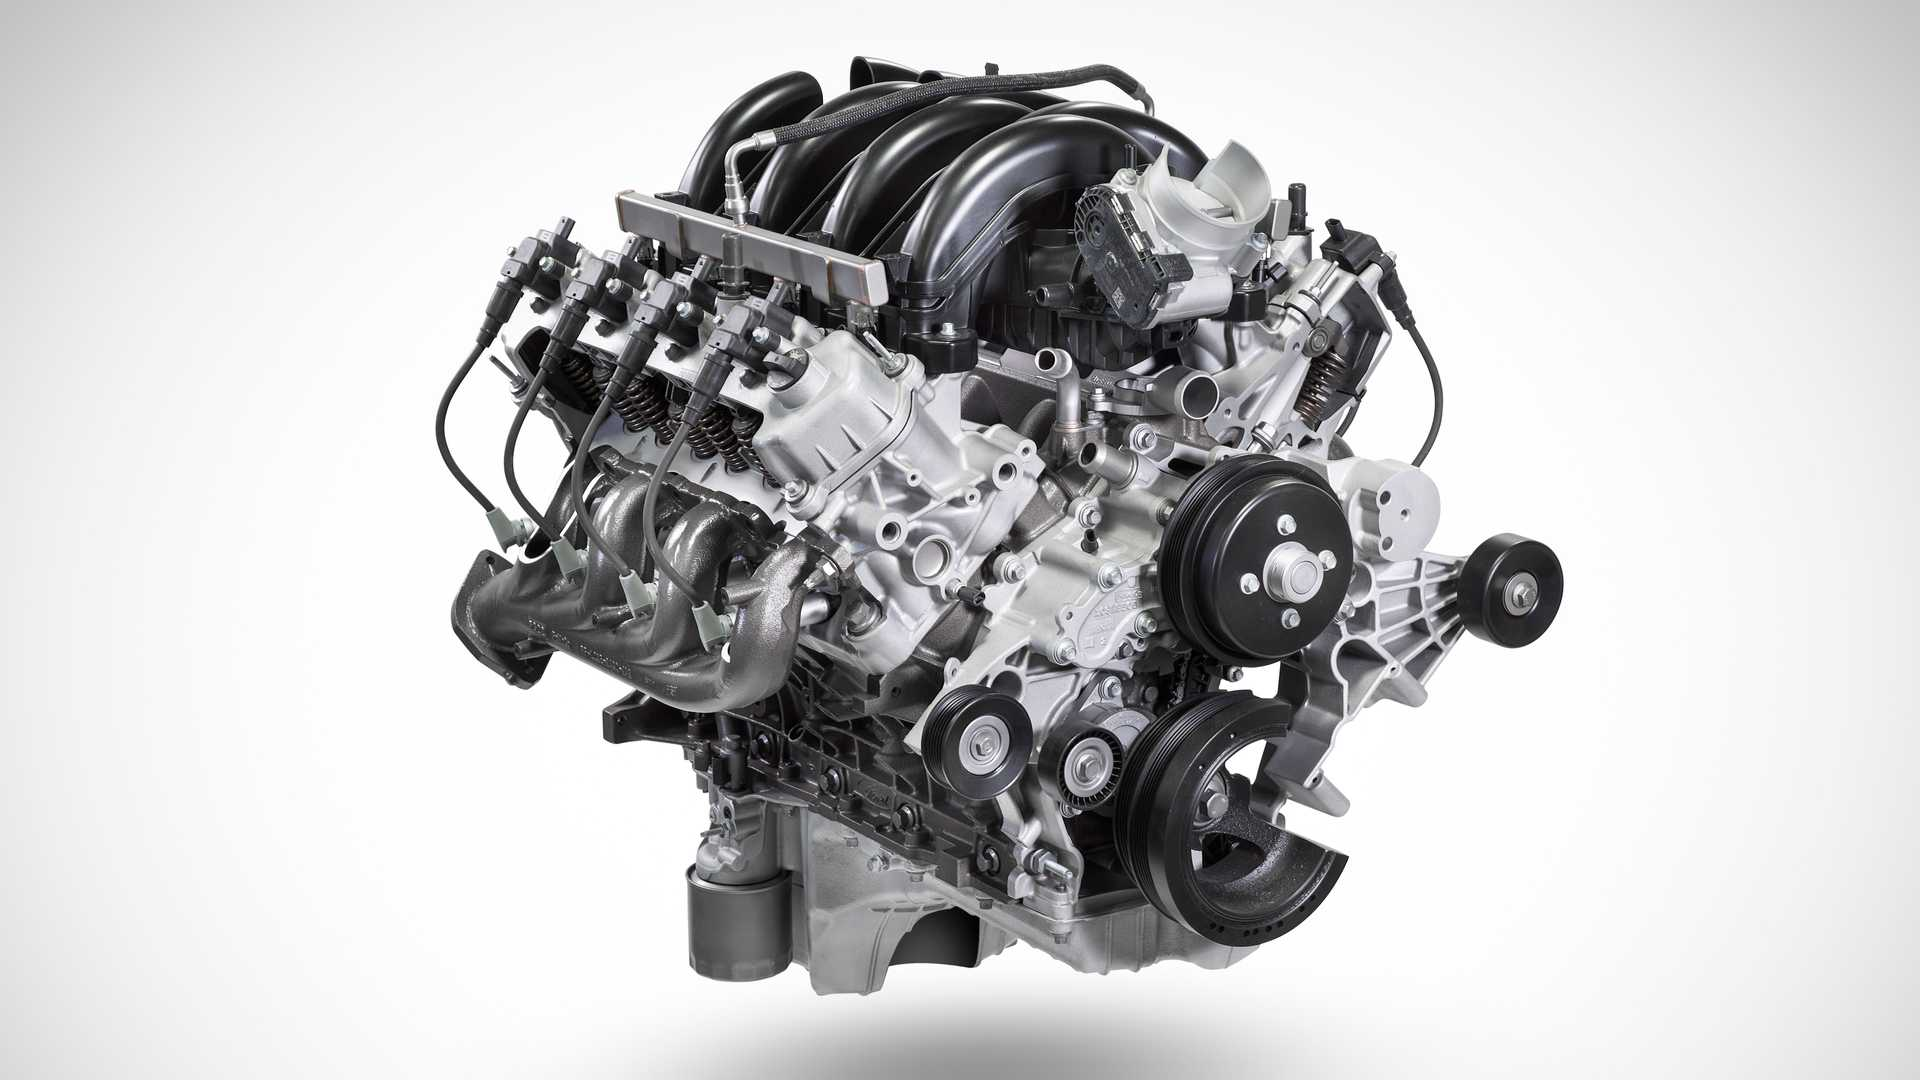 Rumor Mill: Ford Is Developing A Factory Turbocharged Godzilla 7.3L V8 Engine